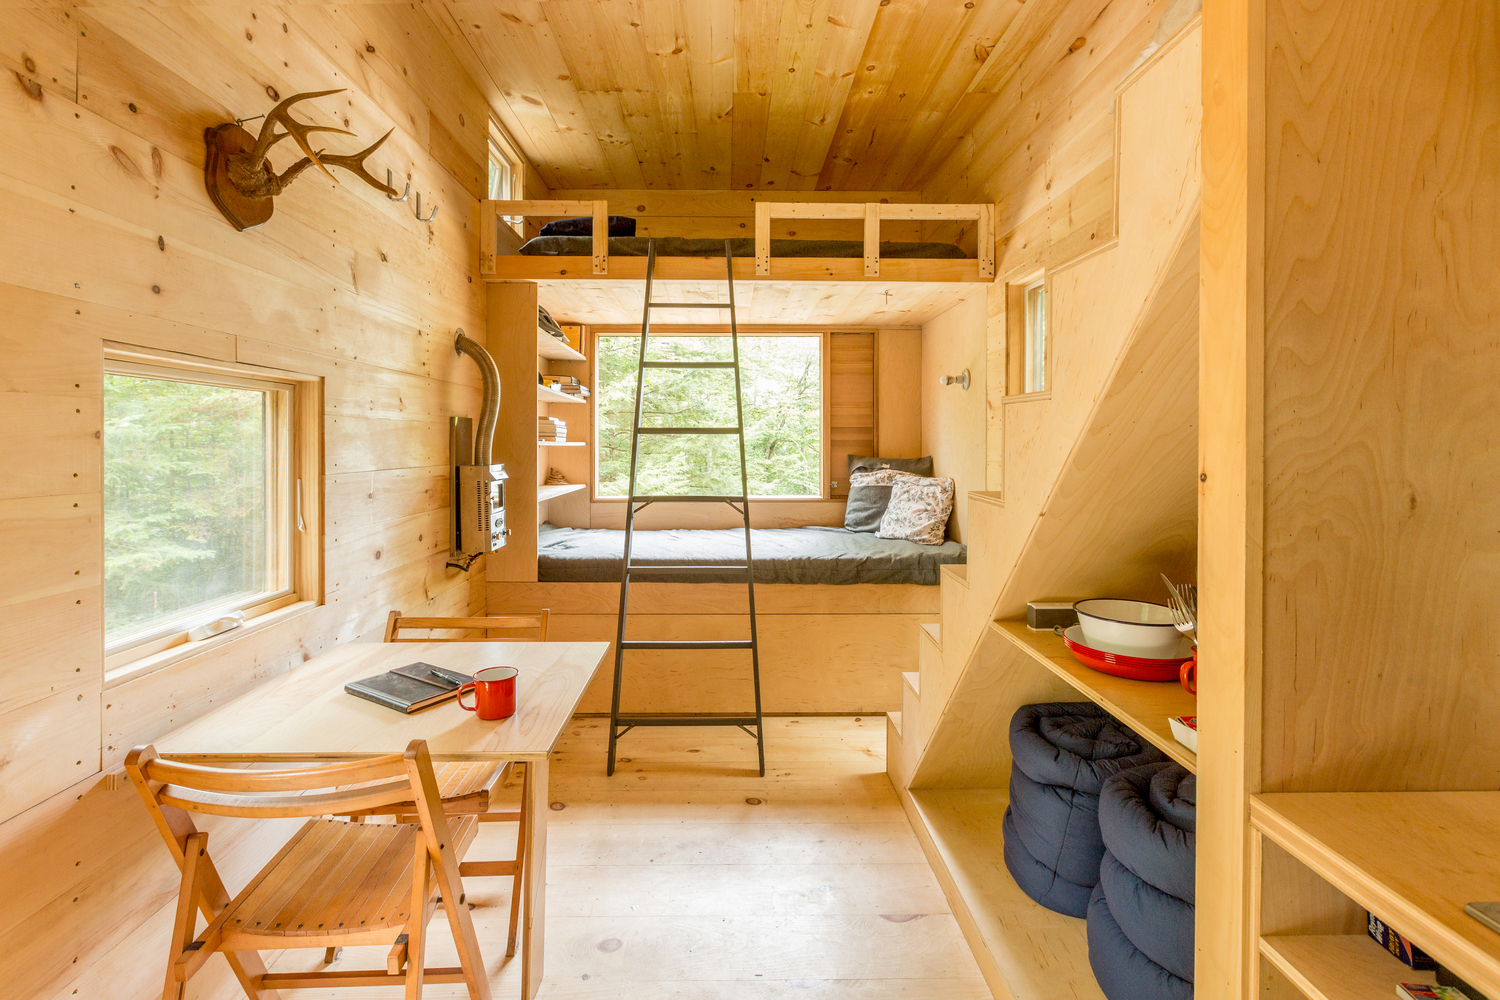 Tiny House Getaway Test Drive a Mini Cabin in Rural New York